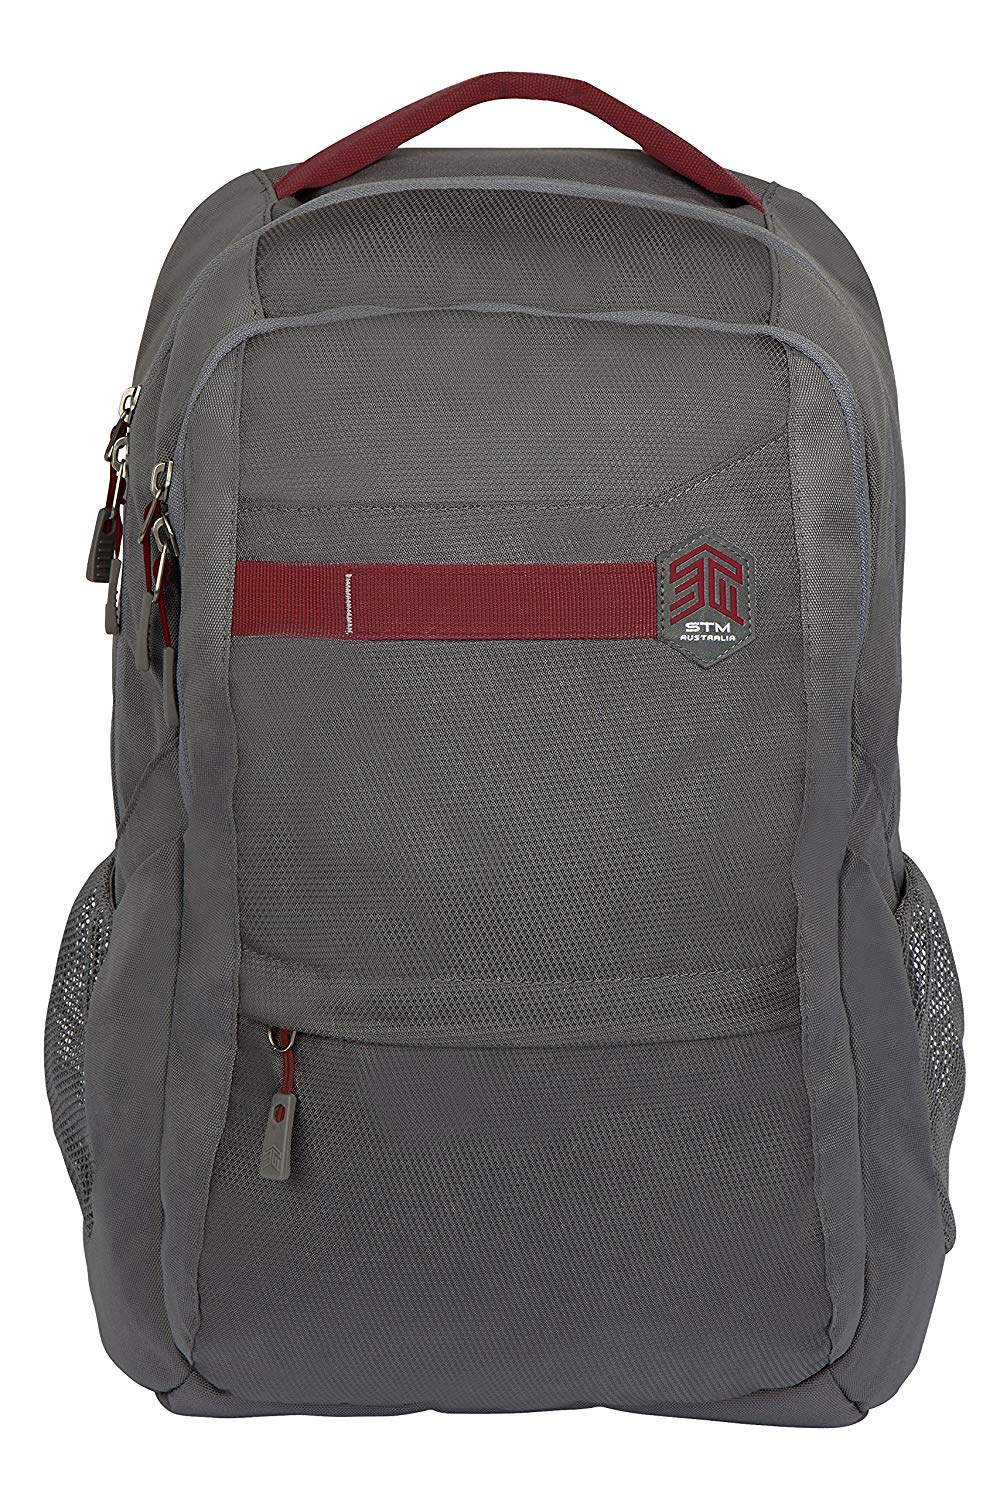 STM Trilogy Backpack for Laptops Up to 15-Inch - Granite Grey (stm-111-171P-16)